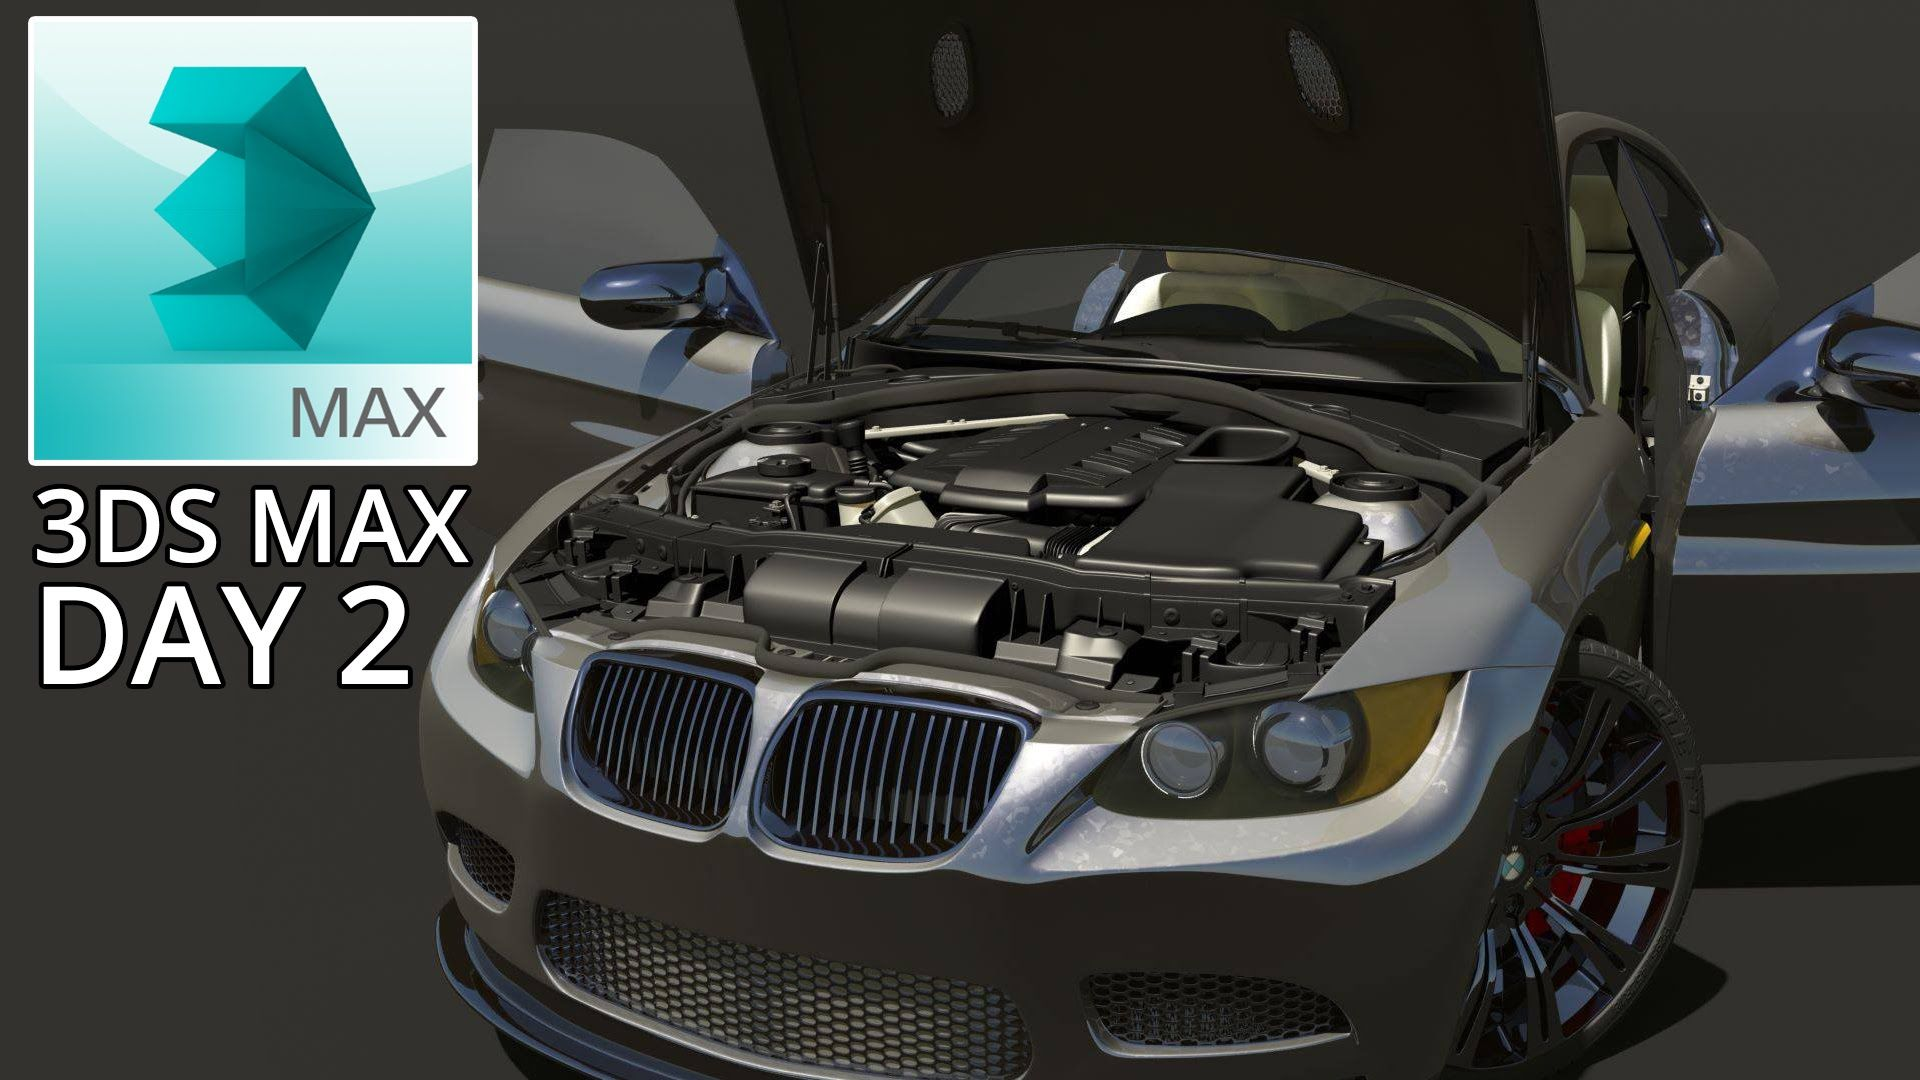 Maya To 3ds Max Day 2 Bmw E92 M3 Car Models 3ds Max Car